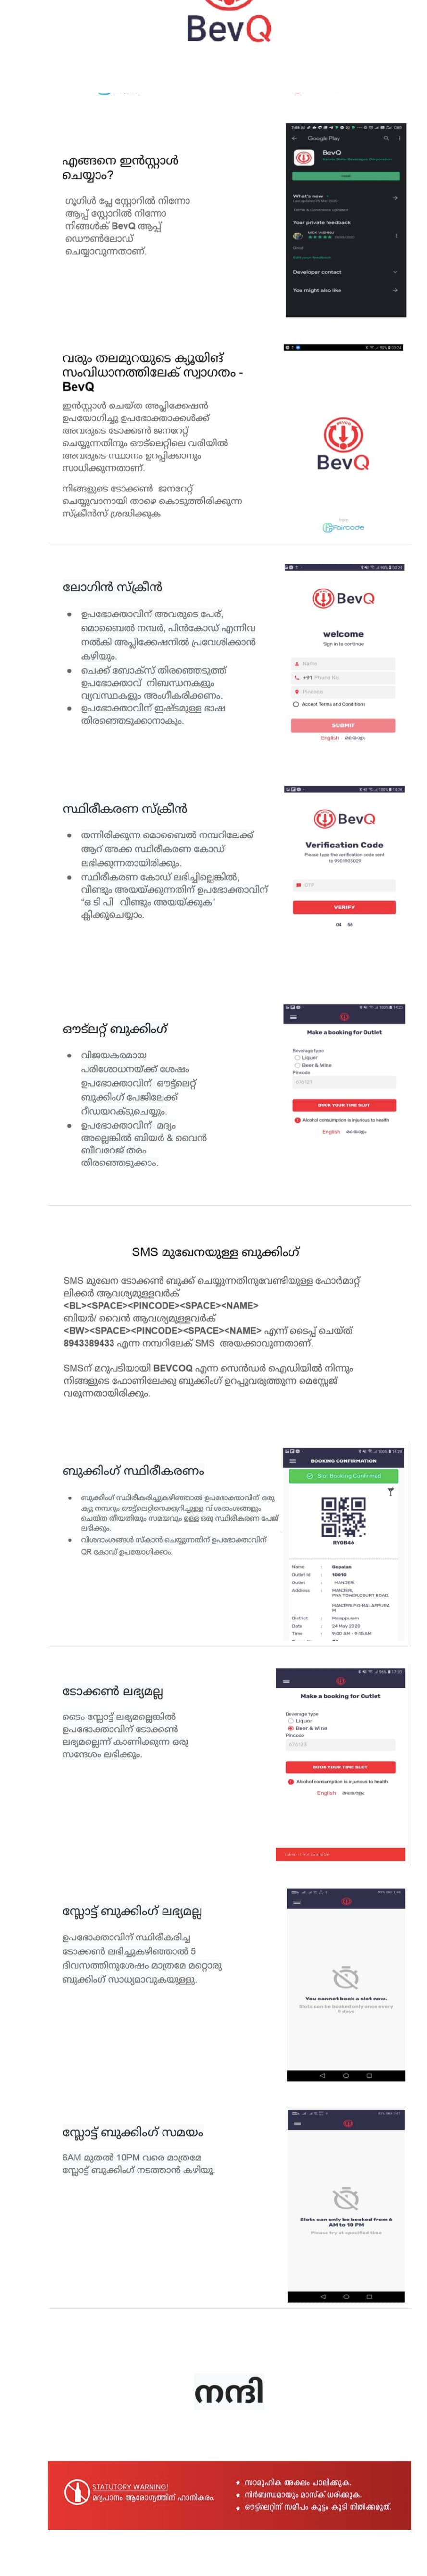 bevq-app-kerala-how-to-use